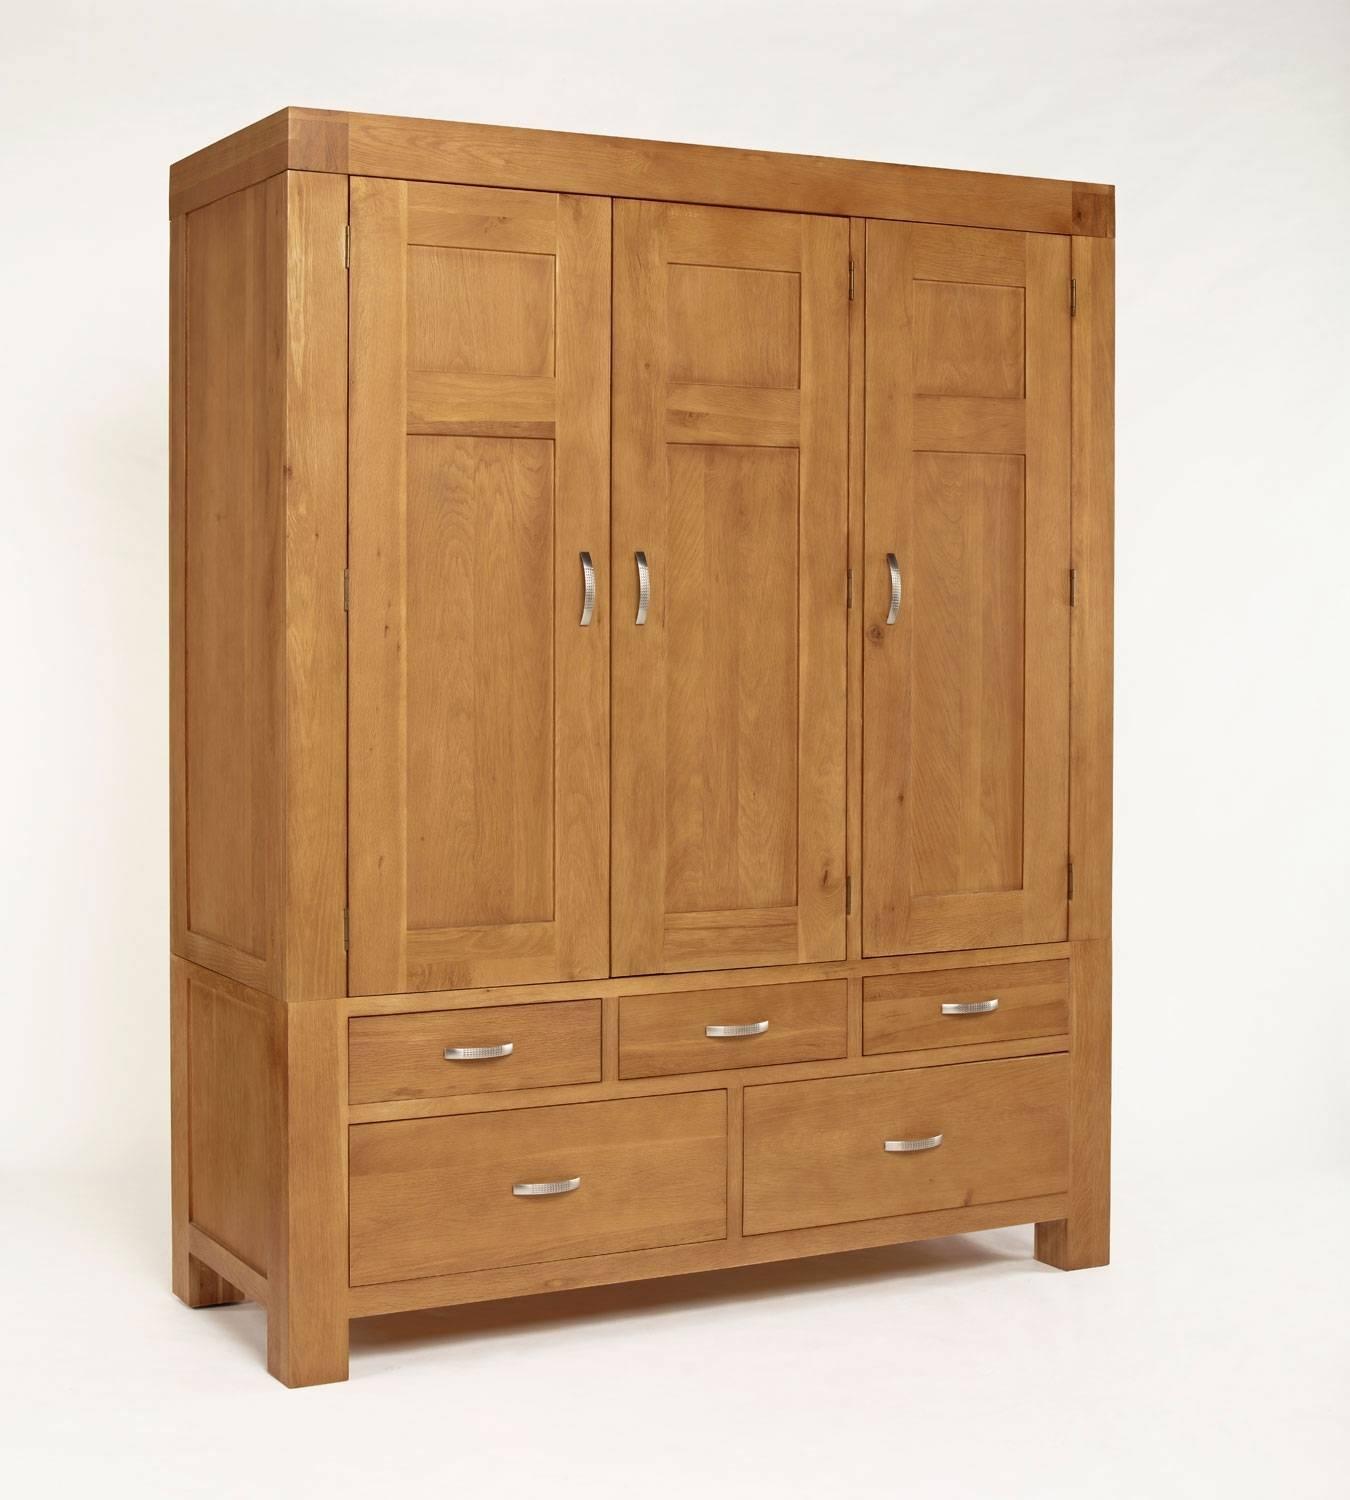 Santana Blonde Oak Triple Wardrobe. Over 50% Off with Large Oak Wardrobes (Image 9 of 15)